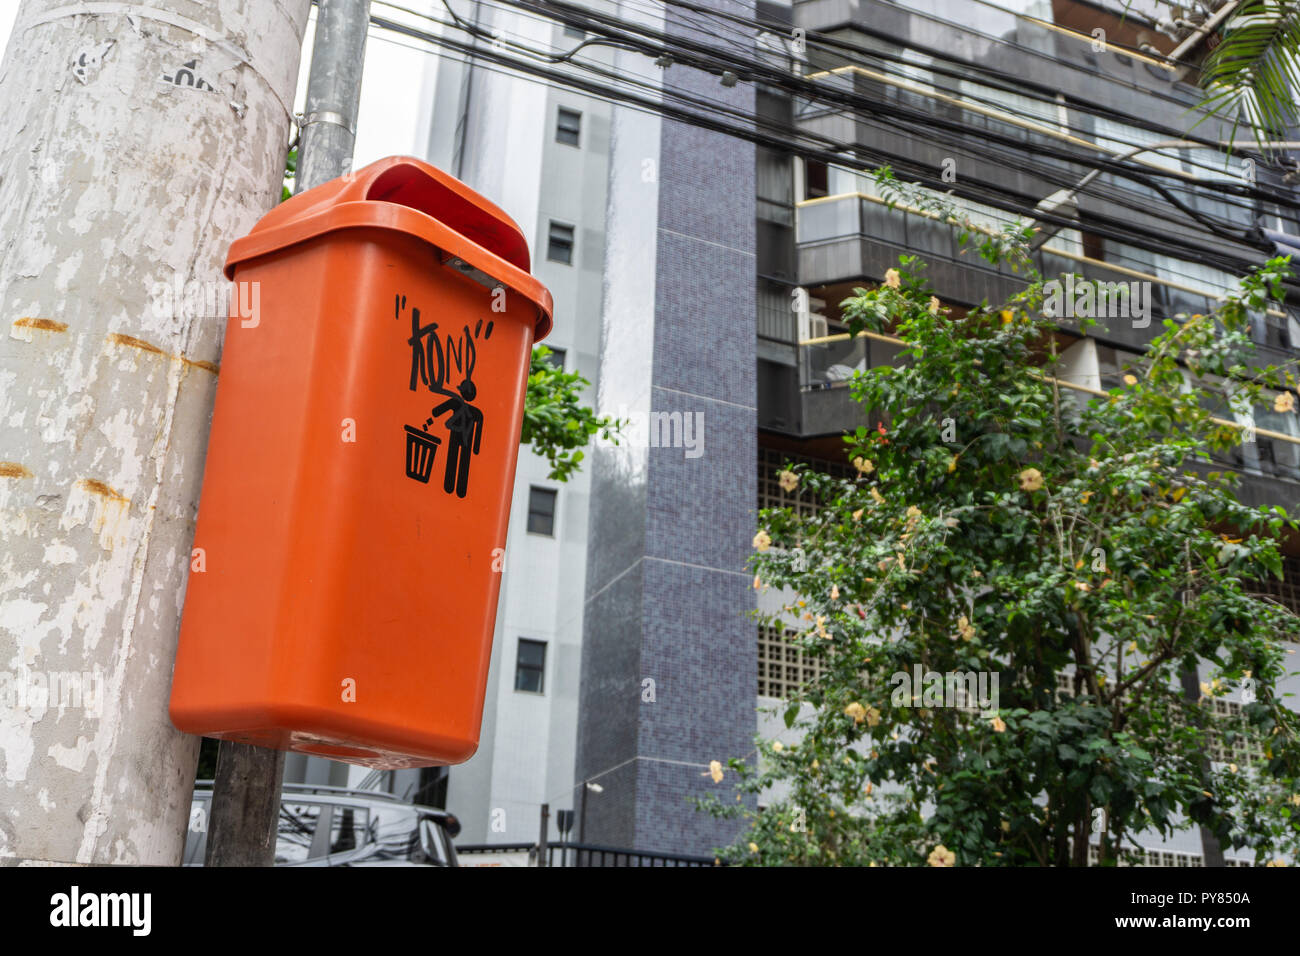 Orange Trash Can in the Streets - Stock Image